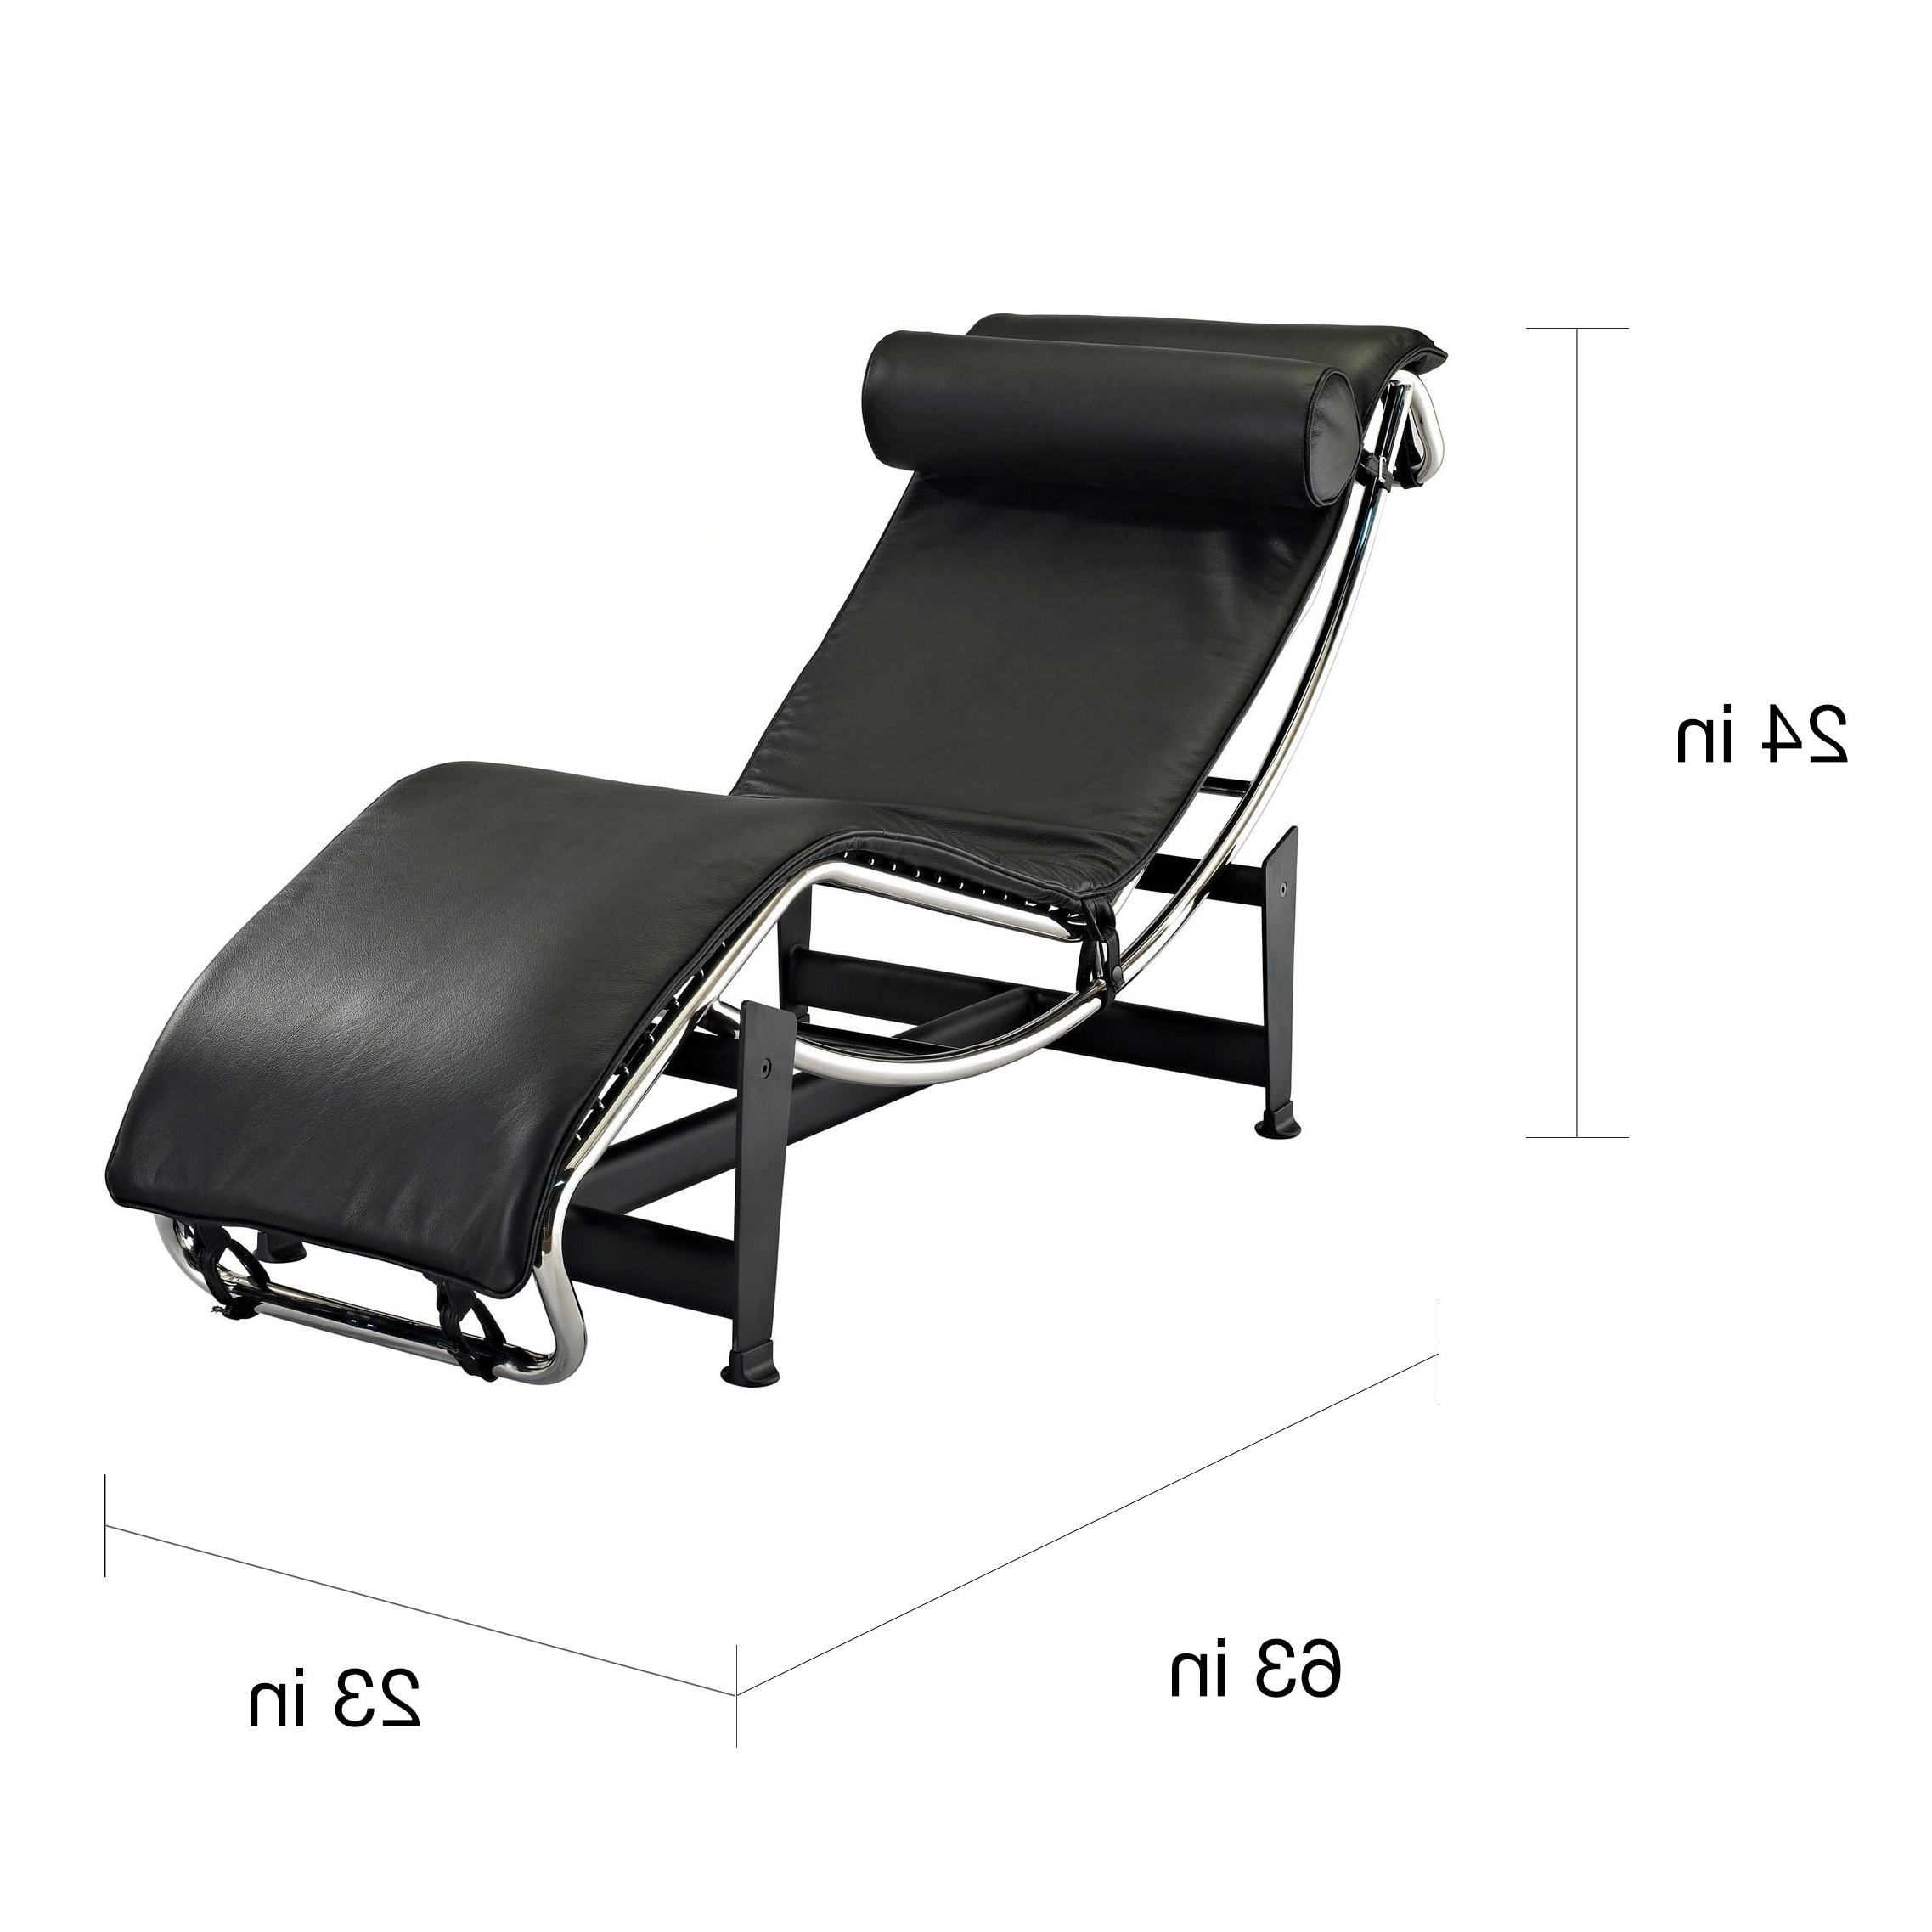 Black Leather Chaise Lounges Throughout Preferred Le Corbusier Style Lc4 Genuine Leather Chaise Lounge – Free (View 11 of 15)